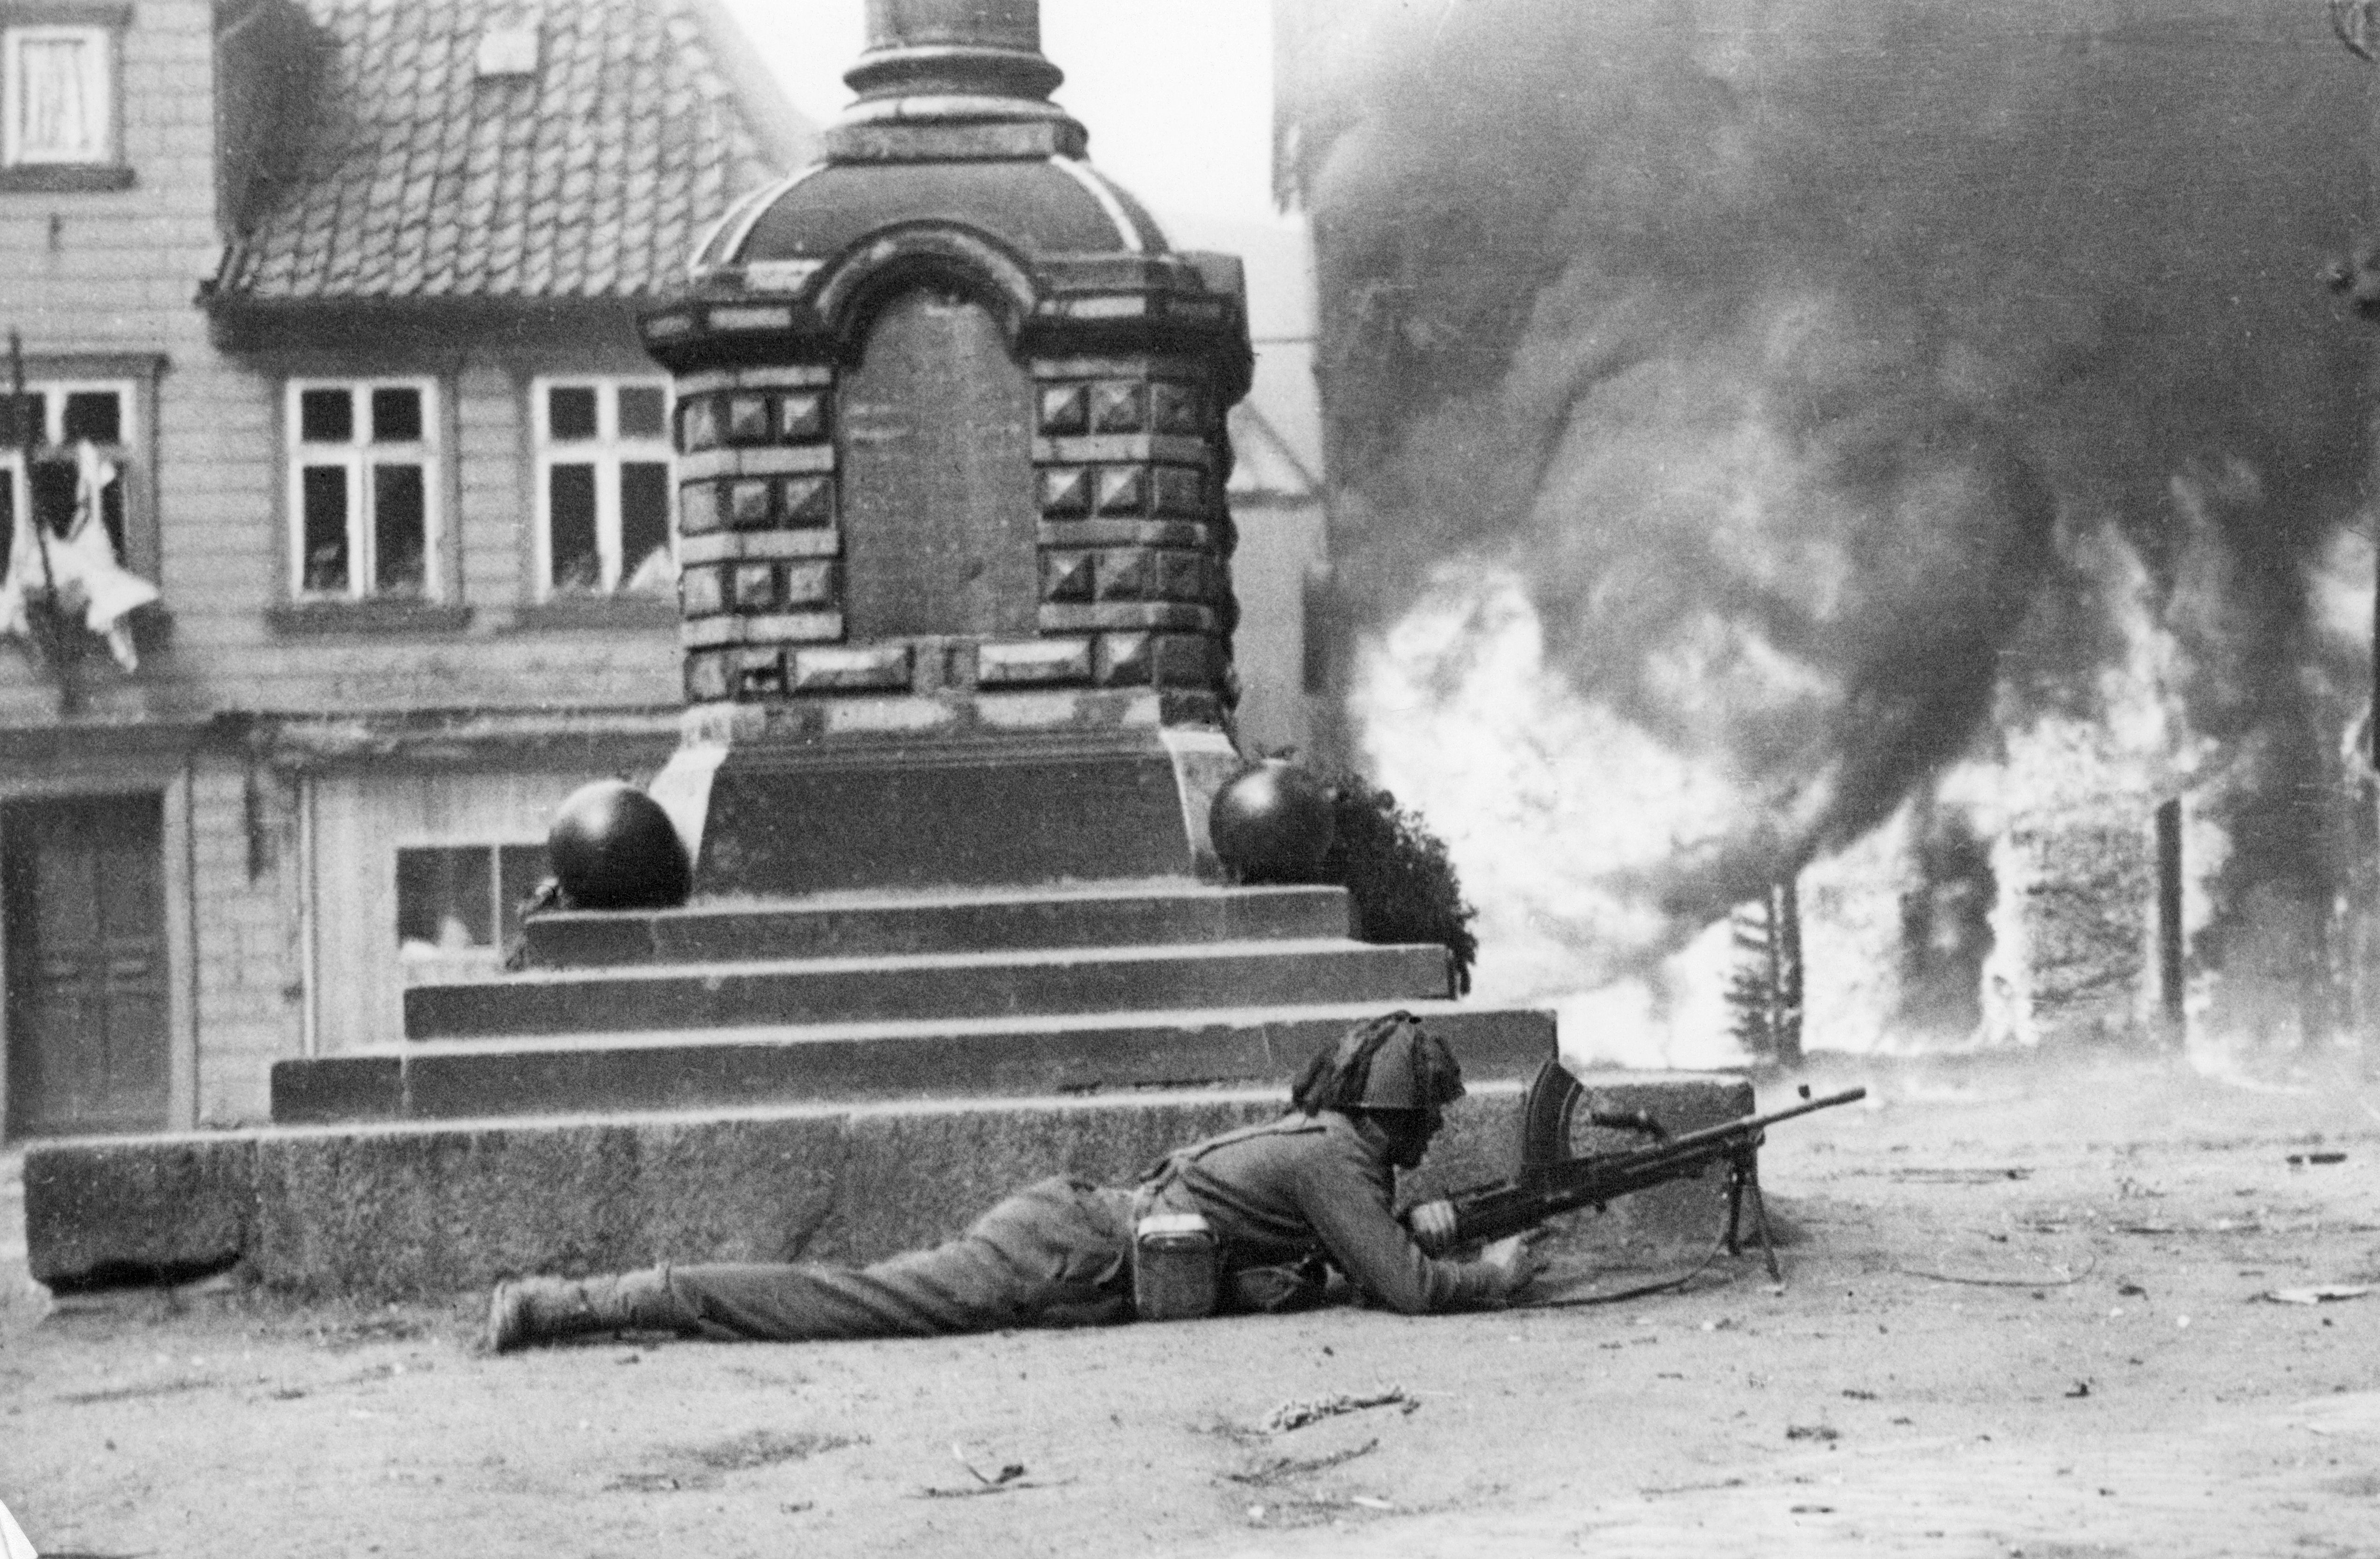 An Allied soldier with a machine gun surveys the crossroads of a partially occupied German village in April 1945 at the end of World War II. (Photo by AFP/Getty Images)